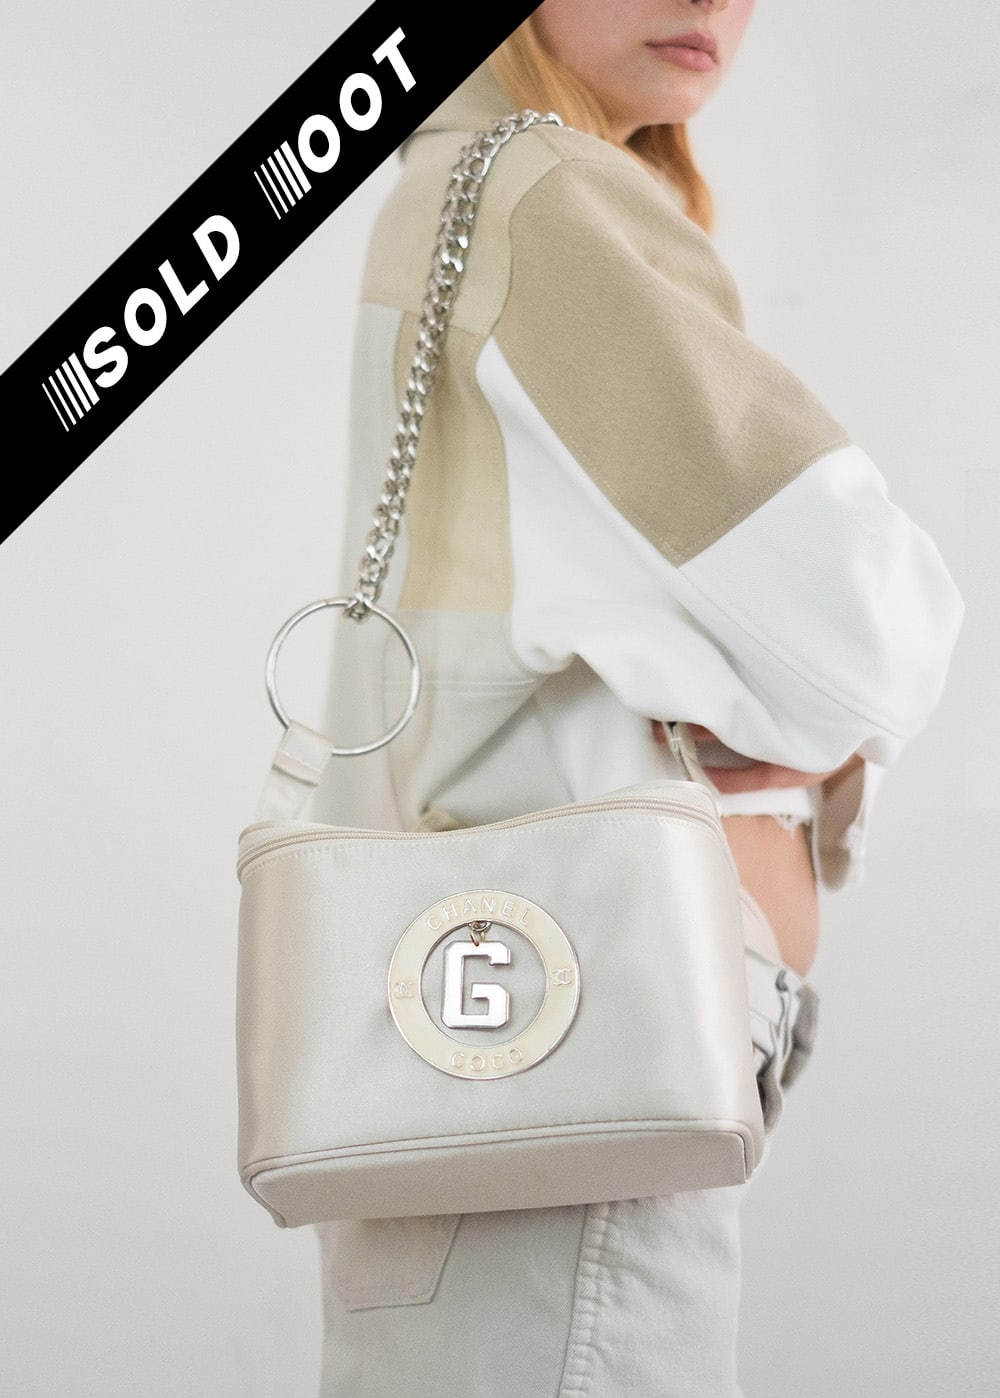 Fake Chanel G Bag 241